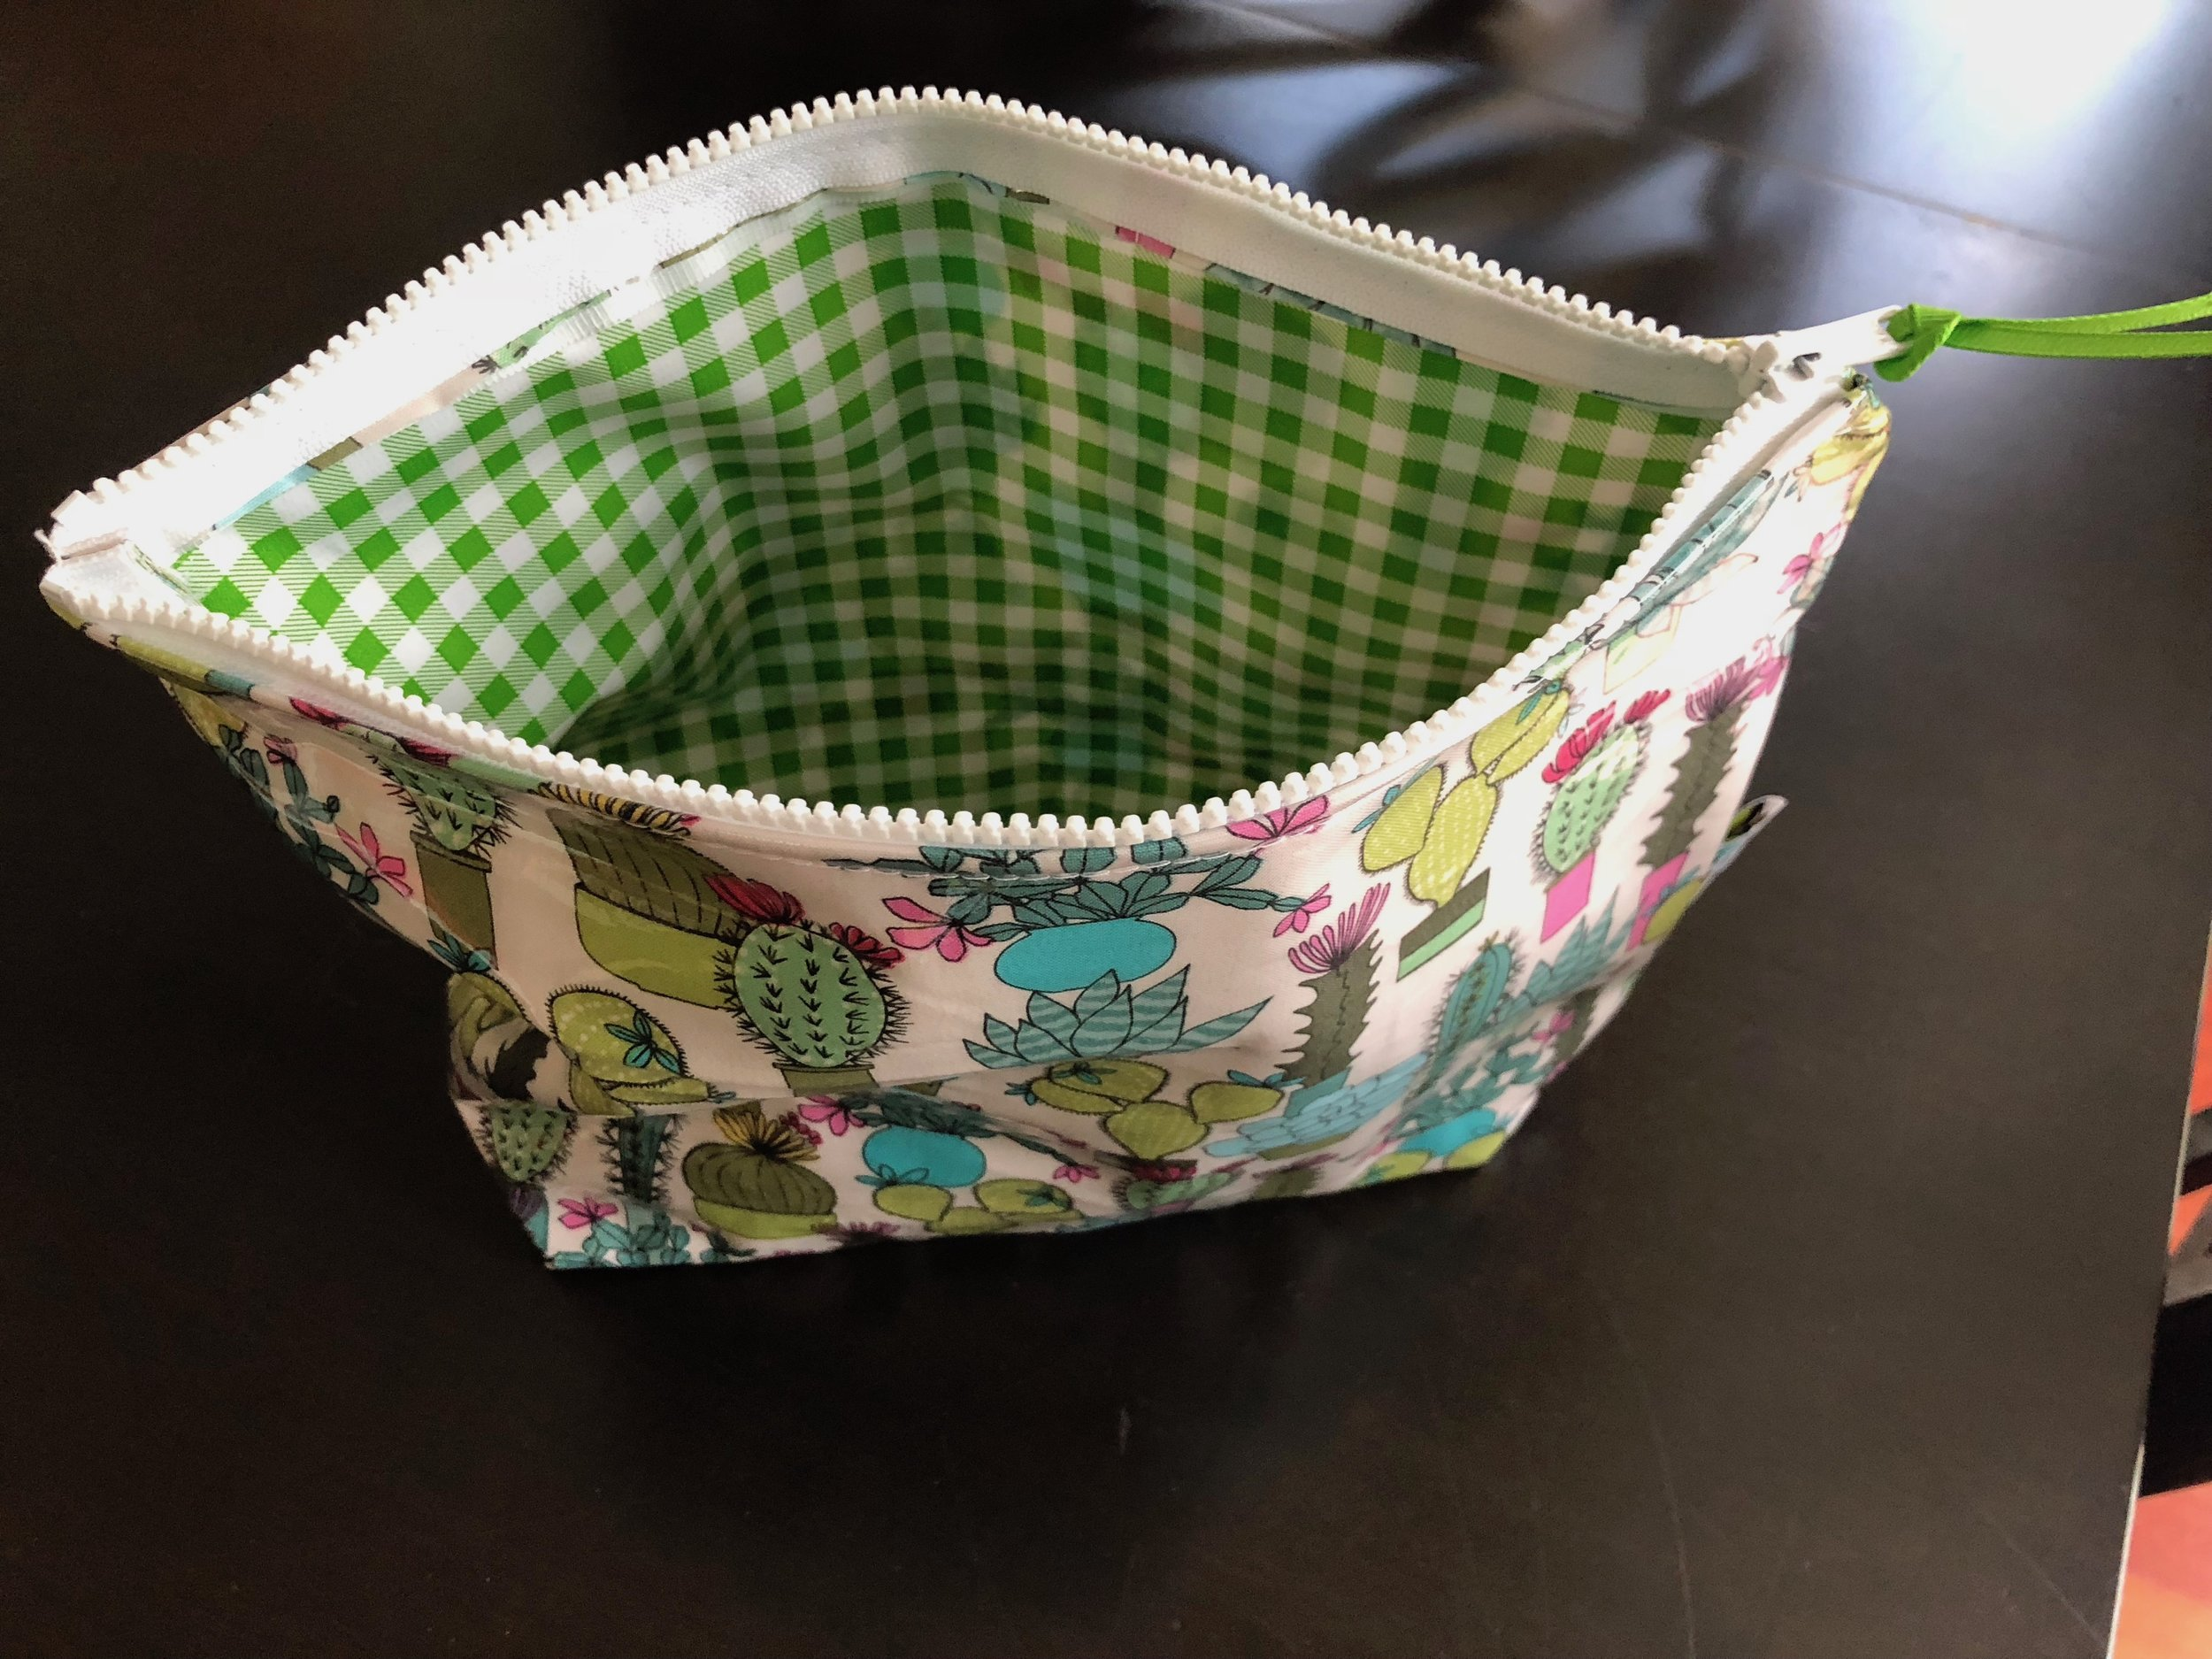 KT Design  makes easy to wipe off pouches so if there are spills, the oil cloth is up for the challenge.